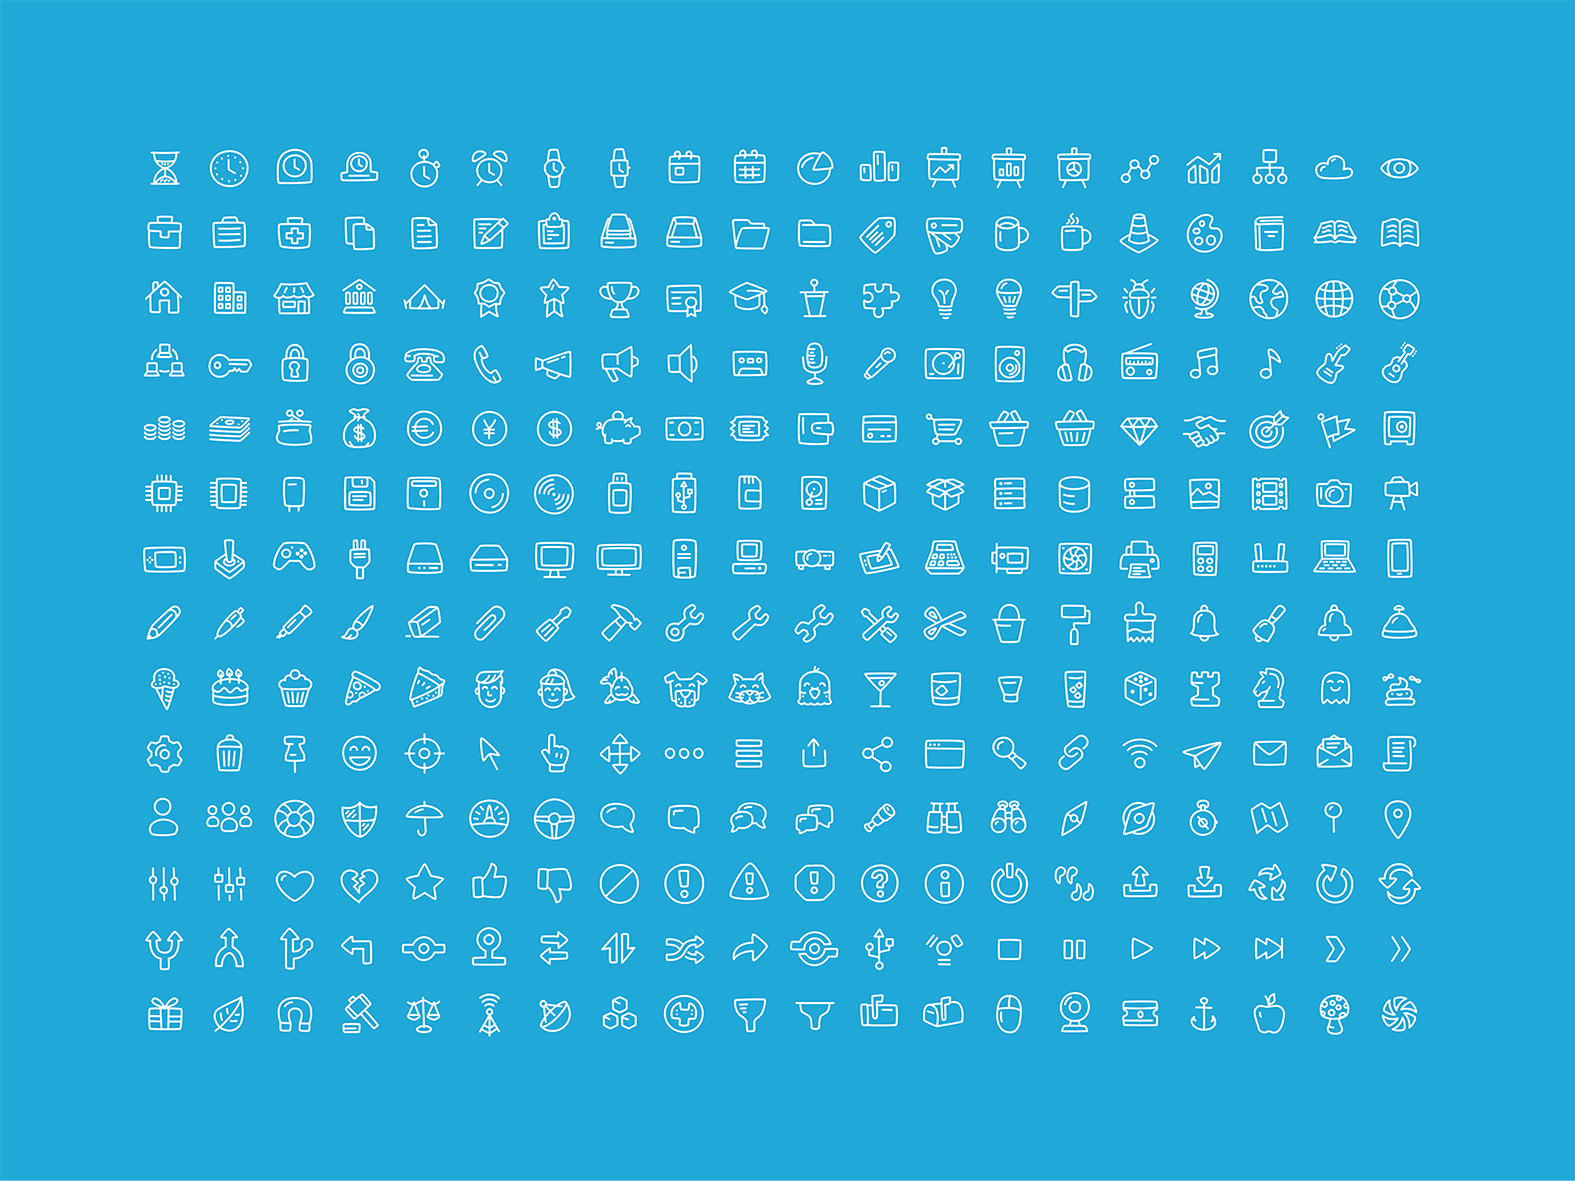 Free-Office-General-Icons